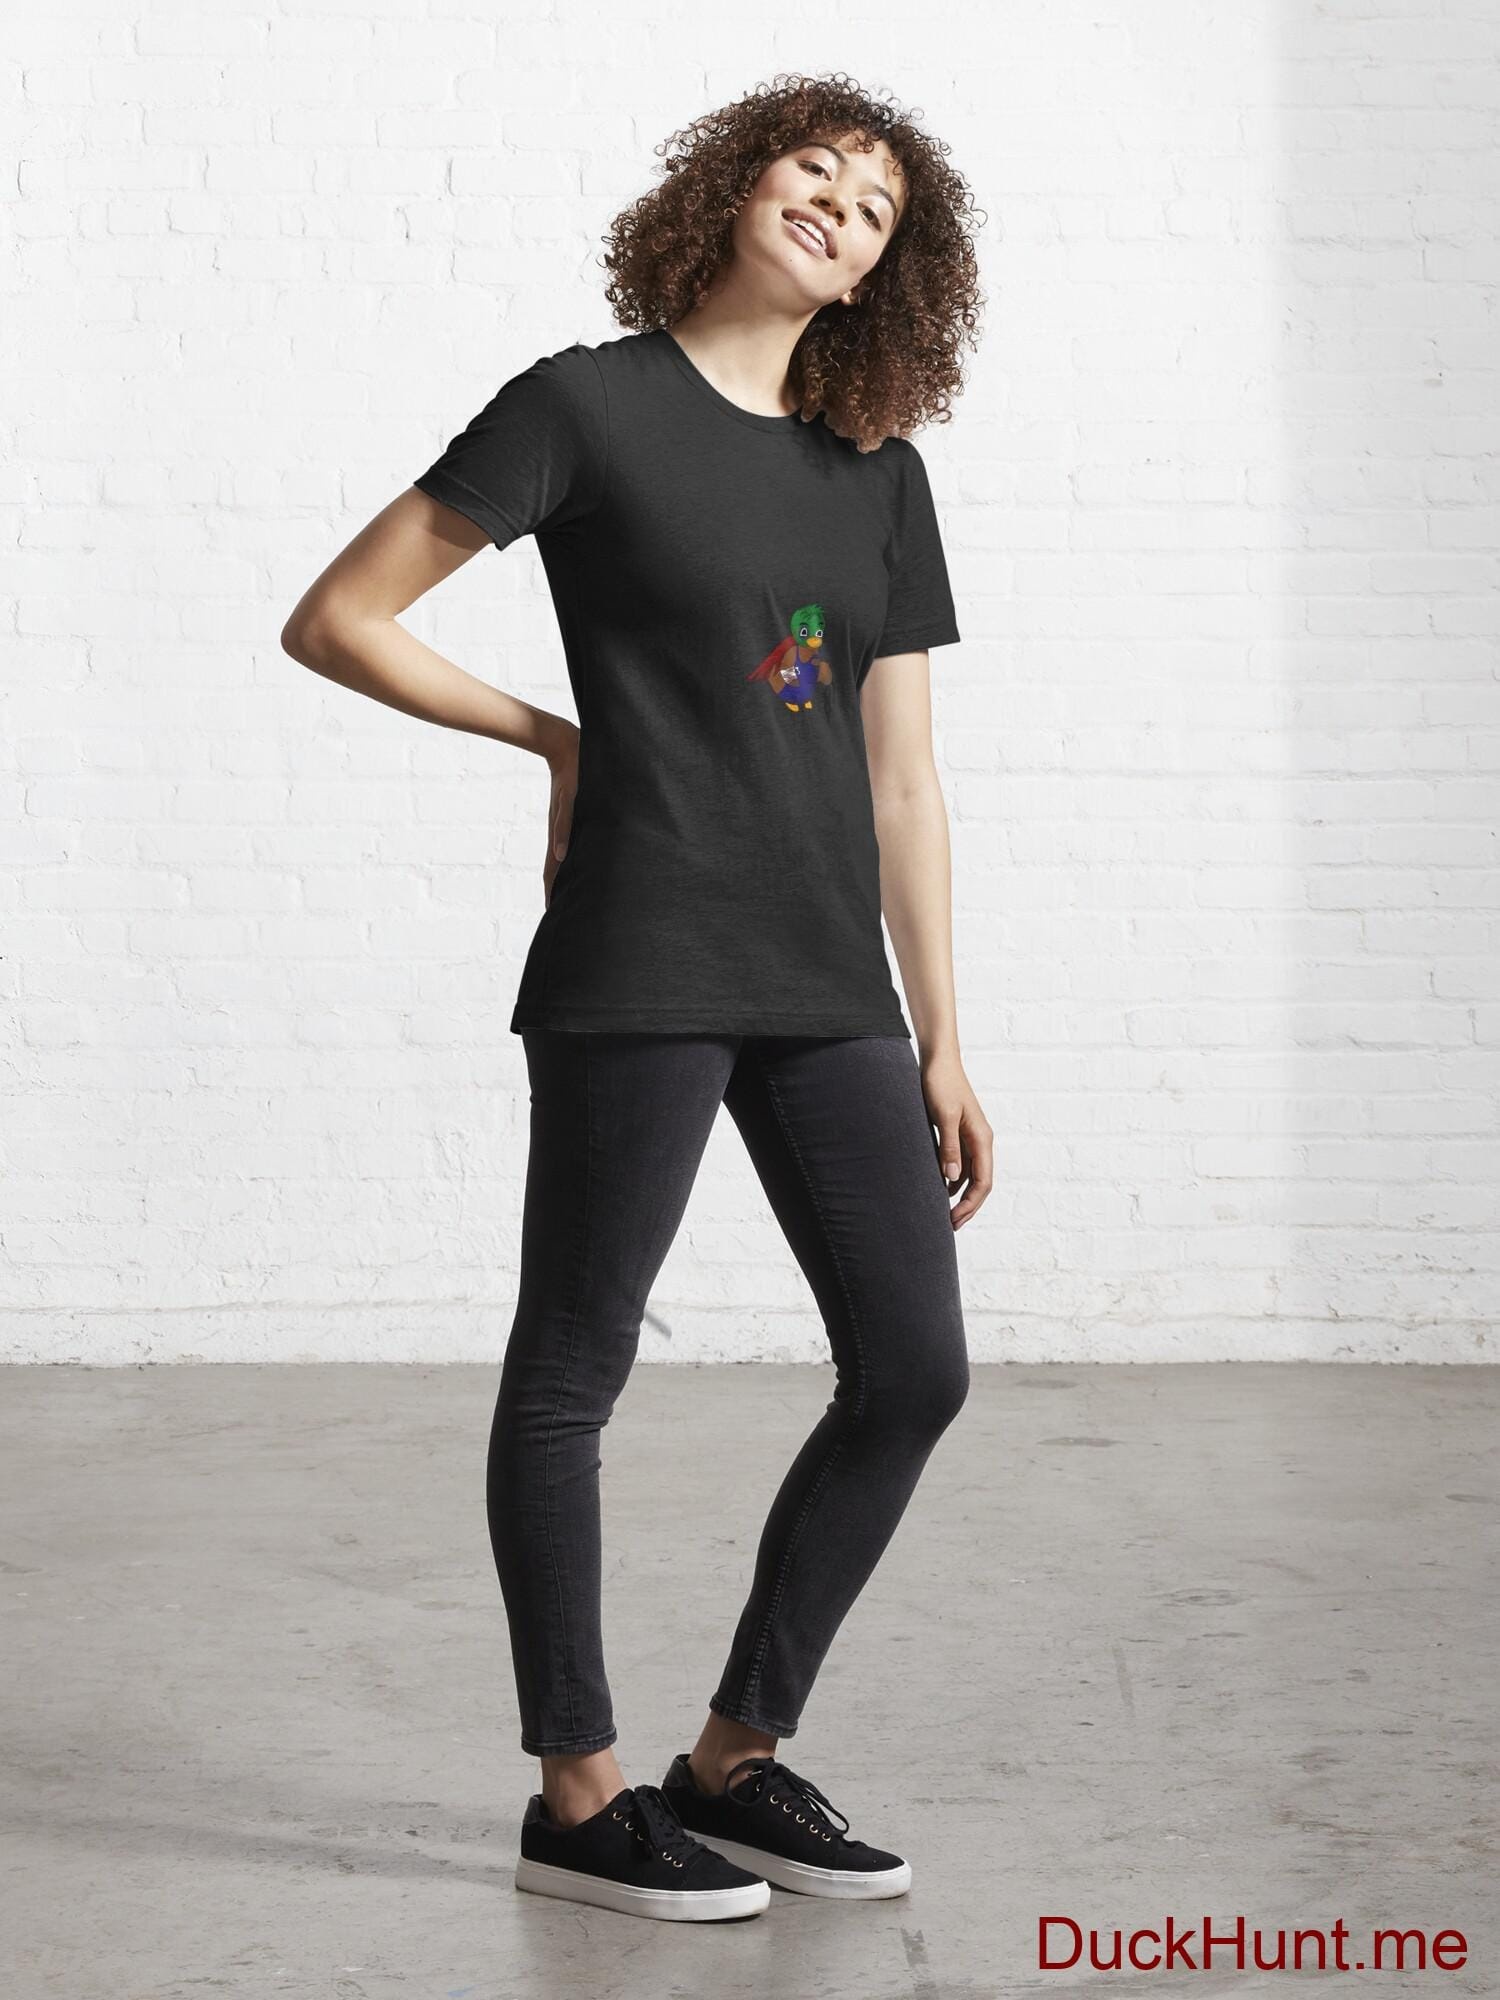 Dead DuckHunt Boss (smokeless) Black Essential T-Shirt (Front printed) alternative image 3